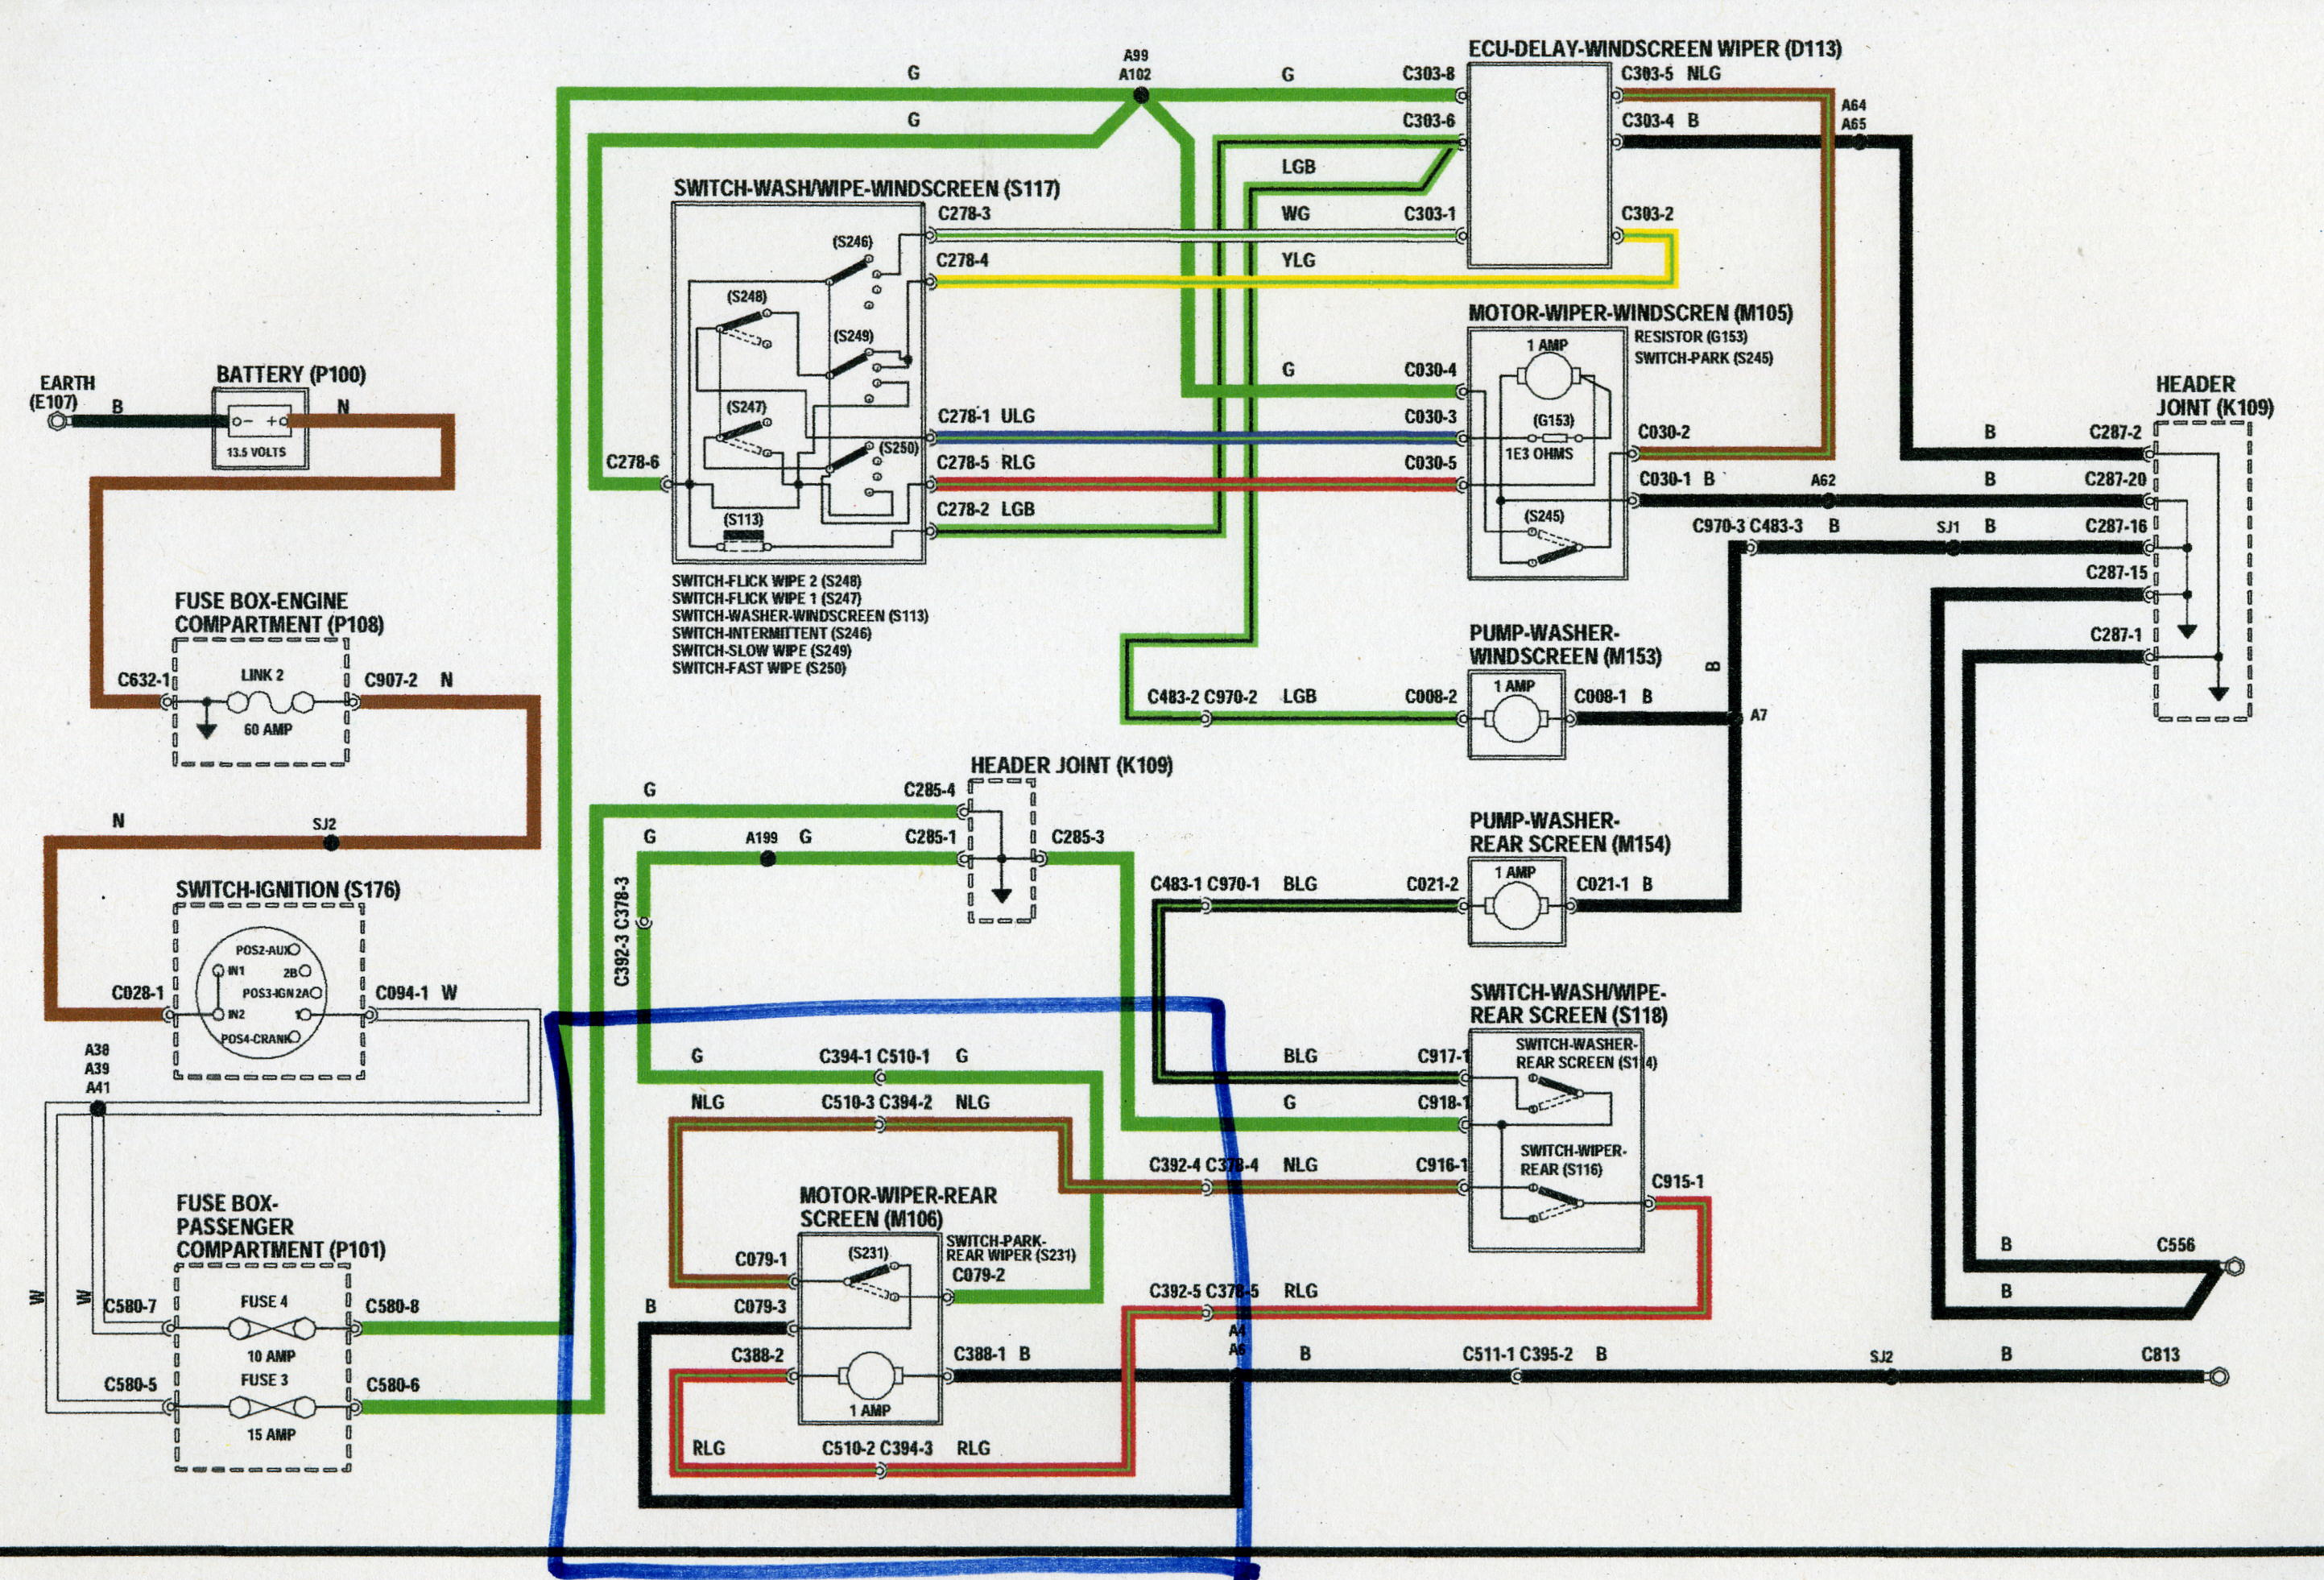 1986 Land Rover 90 Wiring Diagram Complete Diagrams 2001 Discovery Basic U2022 Rh Rnetcomputer Co Hood